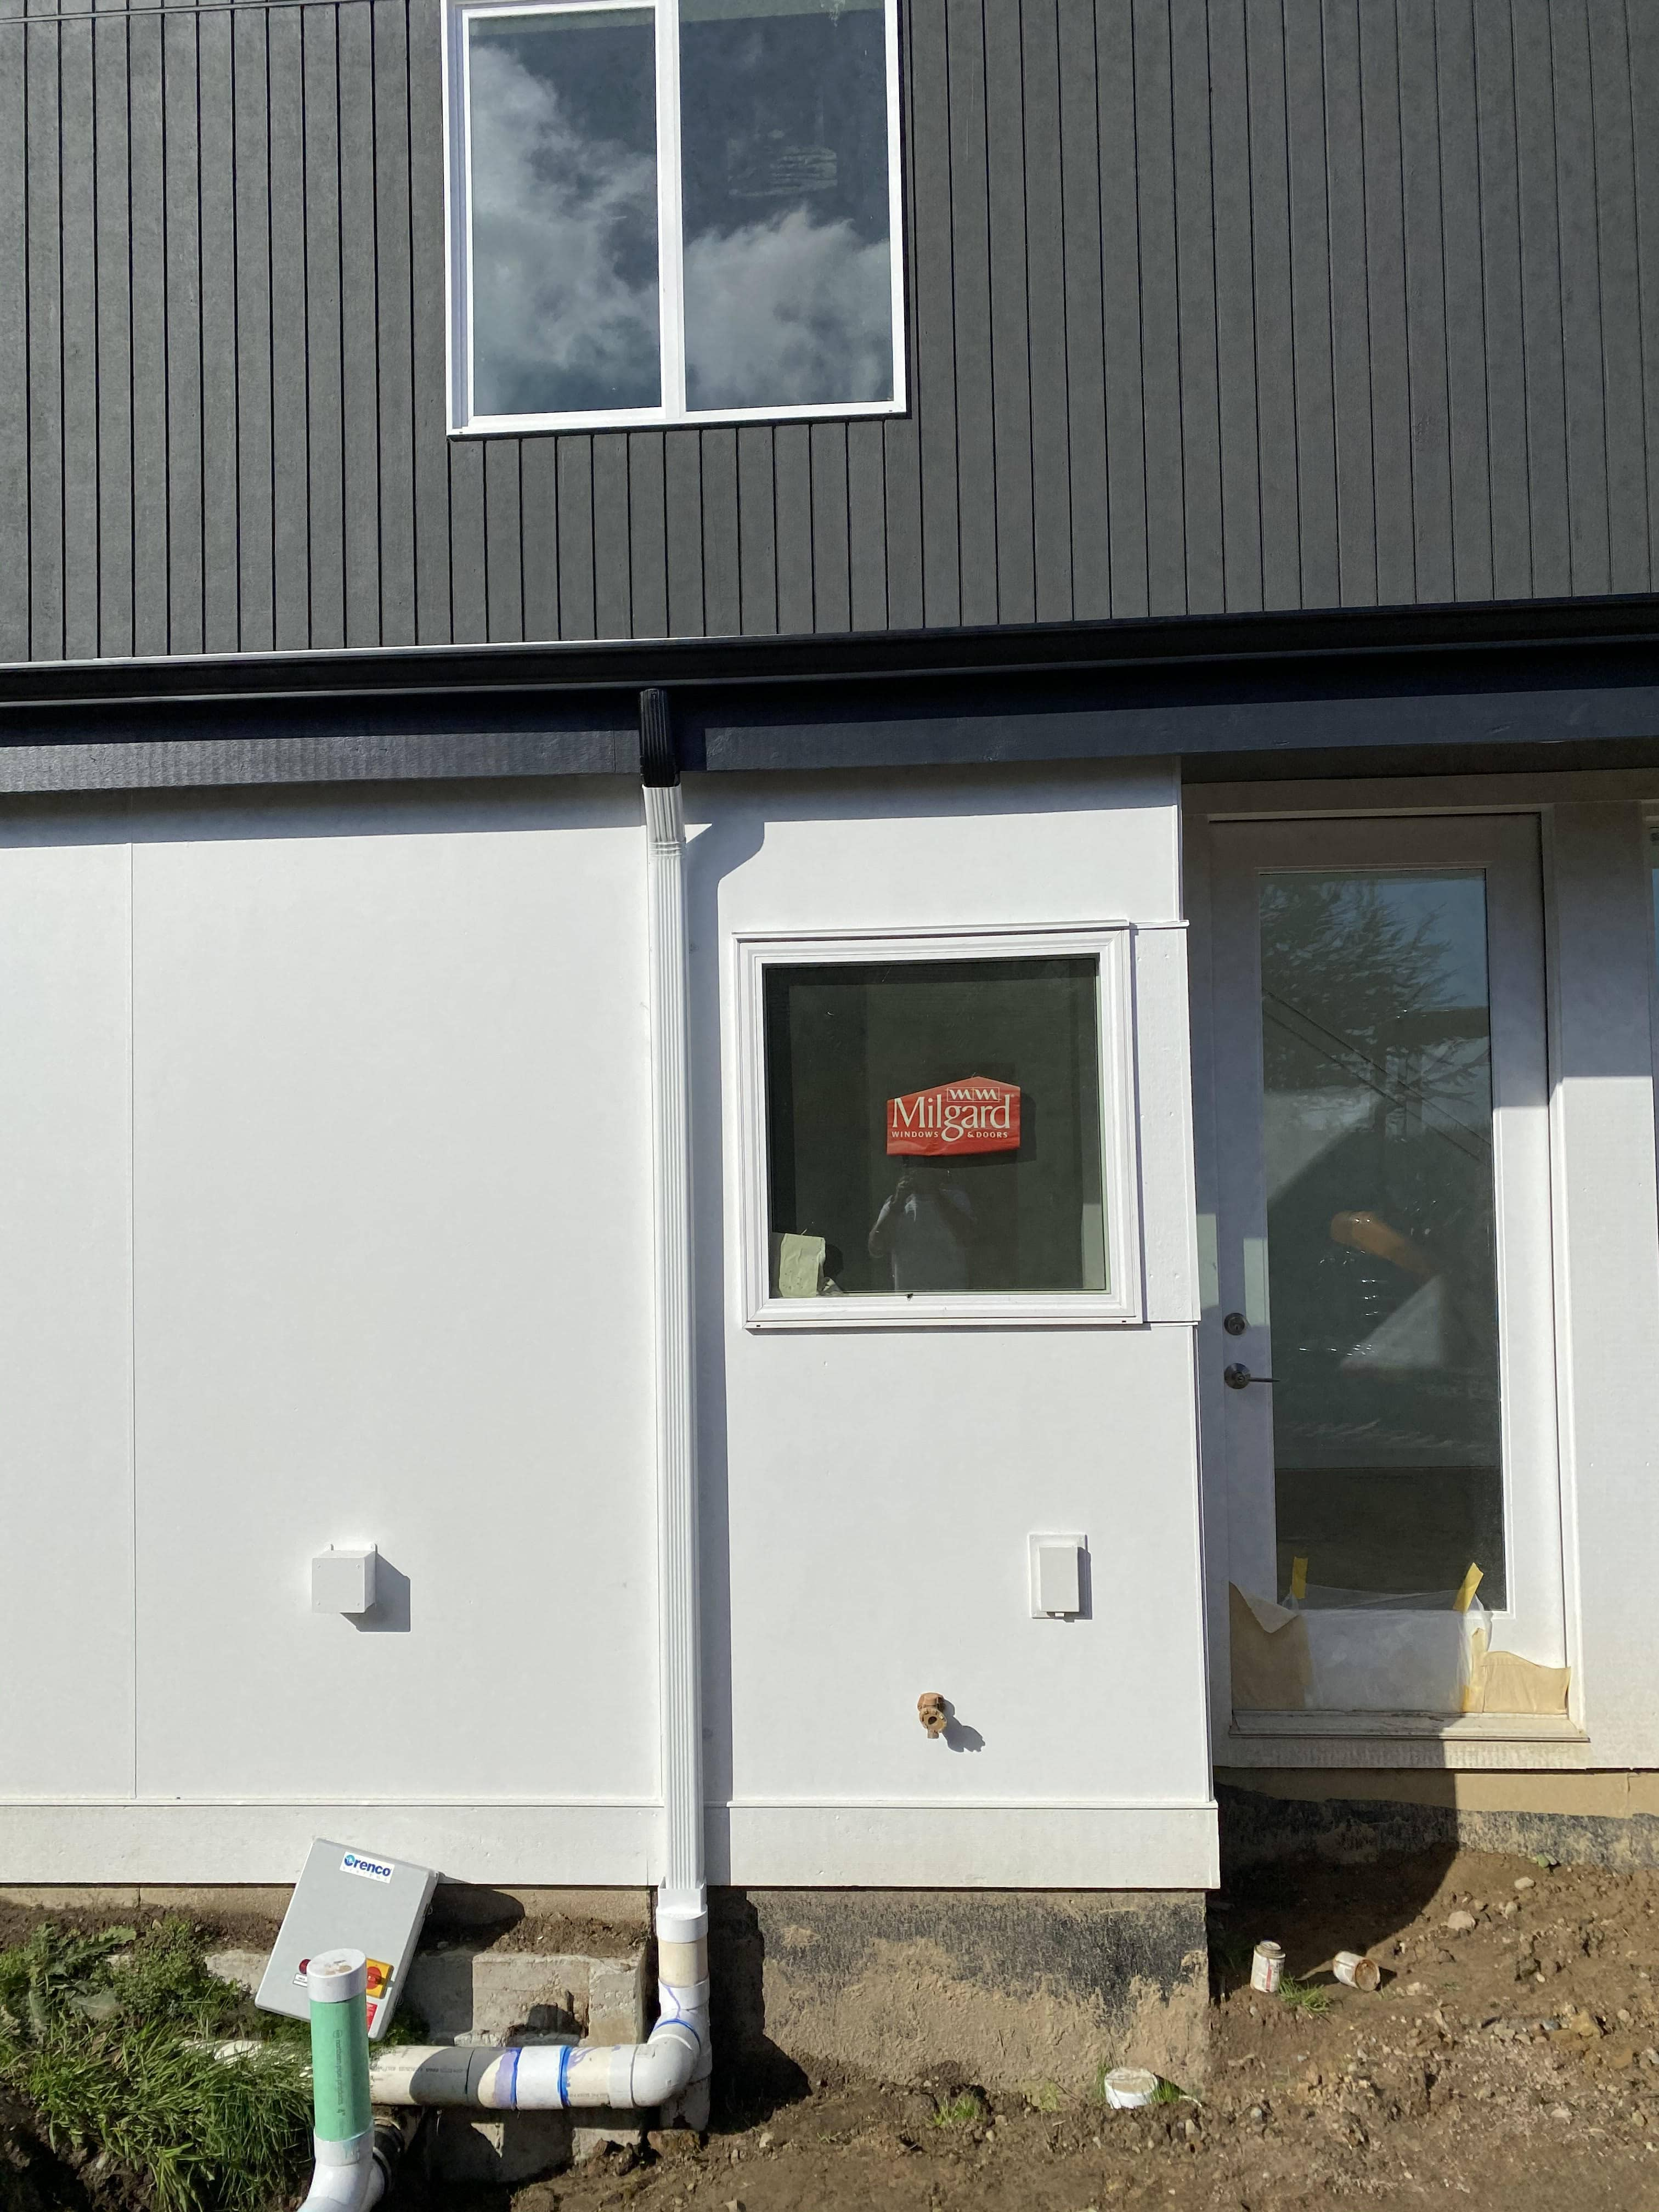 enlarged photo of woden siding home freshly stained